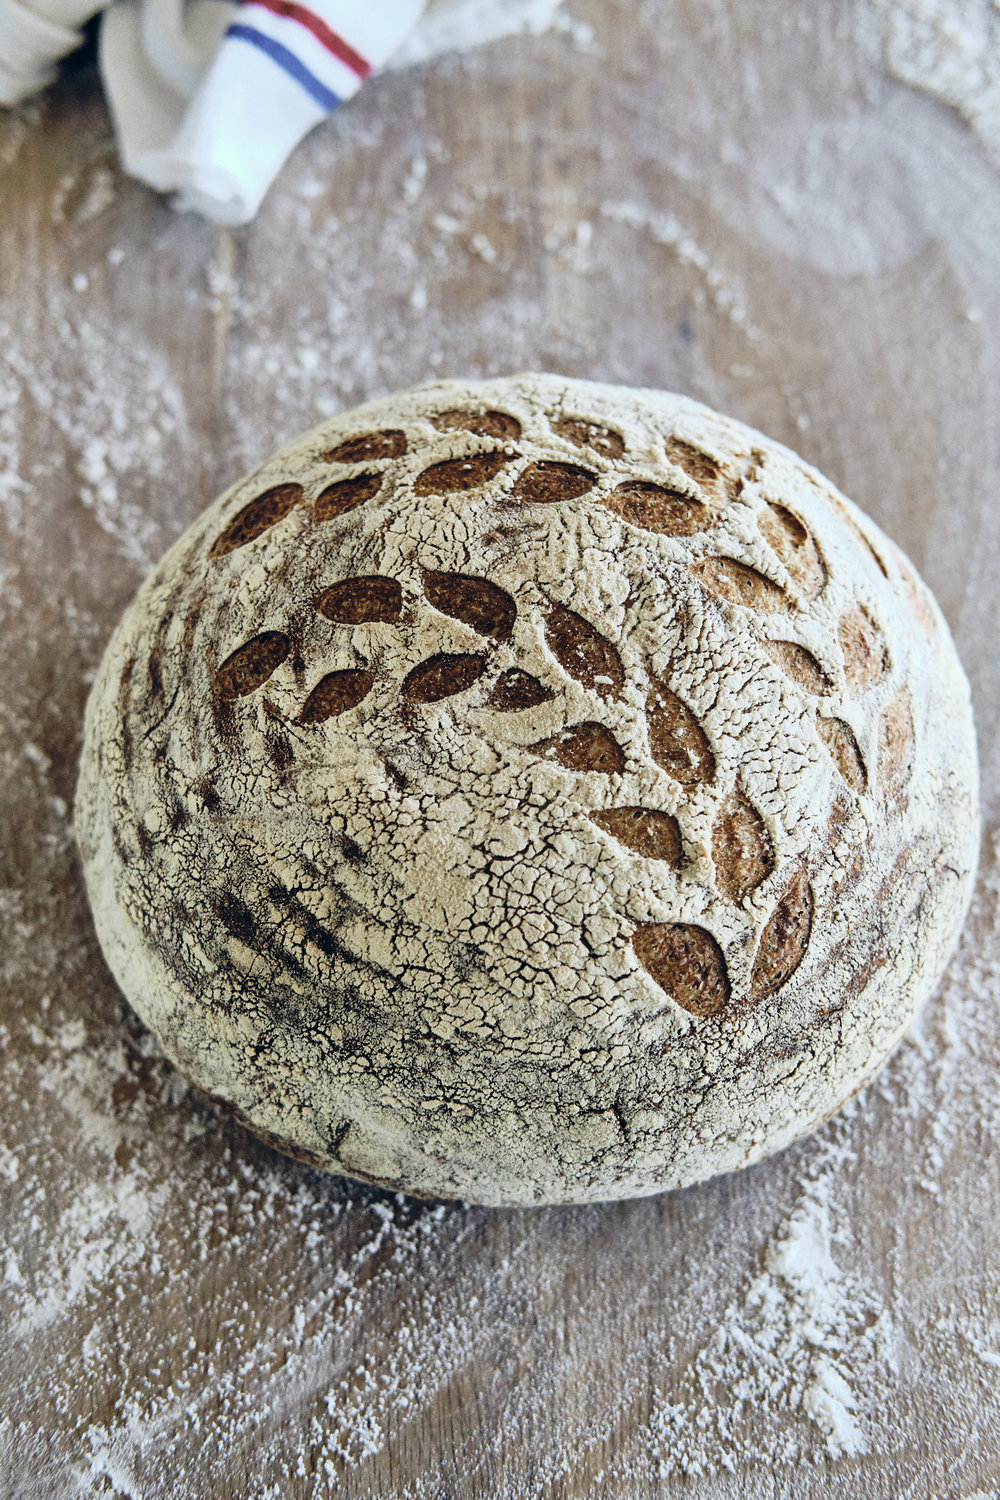 fridays @ 10aM beginning in july - Bread Talk & TastingCome out and learn about the latest addition to our farm - our certified organic bakery. Taste all of our gluten-filled offerings and leave with a new understanding of the art of making bread.10$ per personNo advance registration needed. Meet at farmstand.